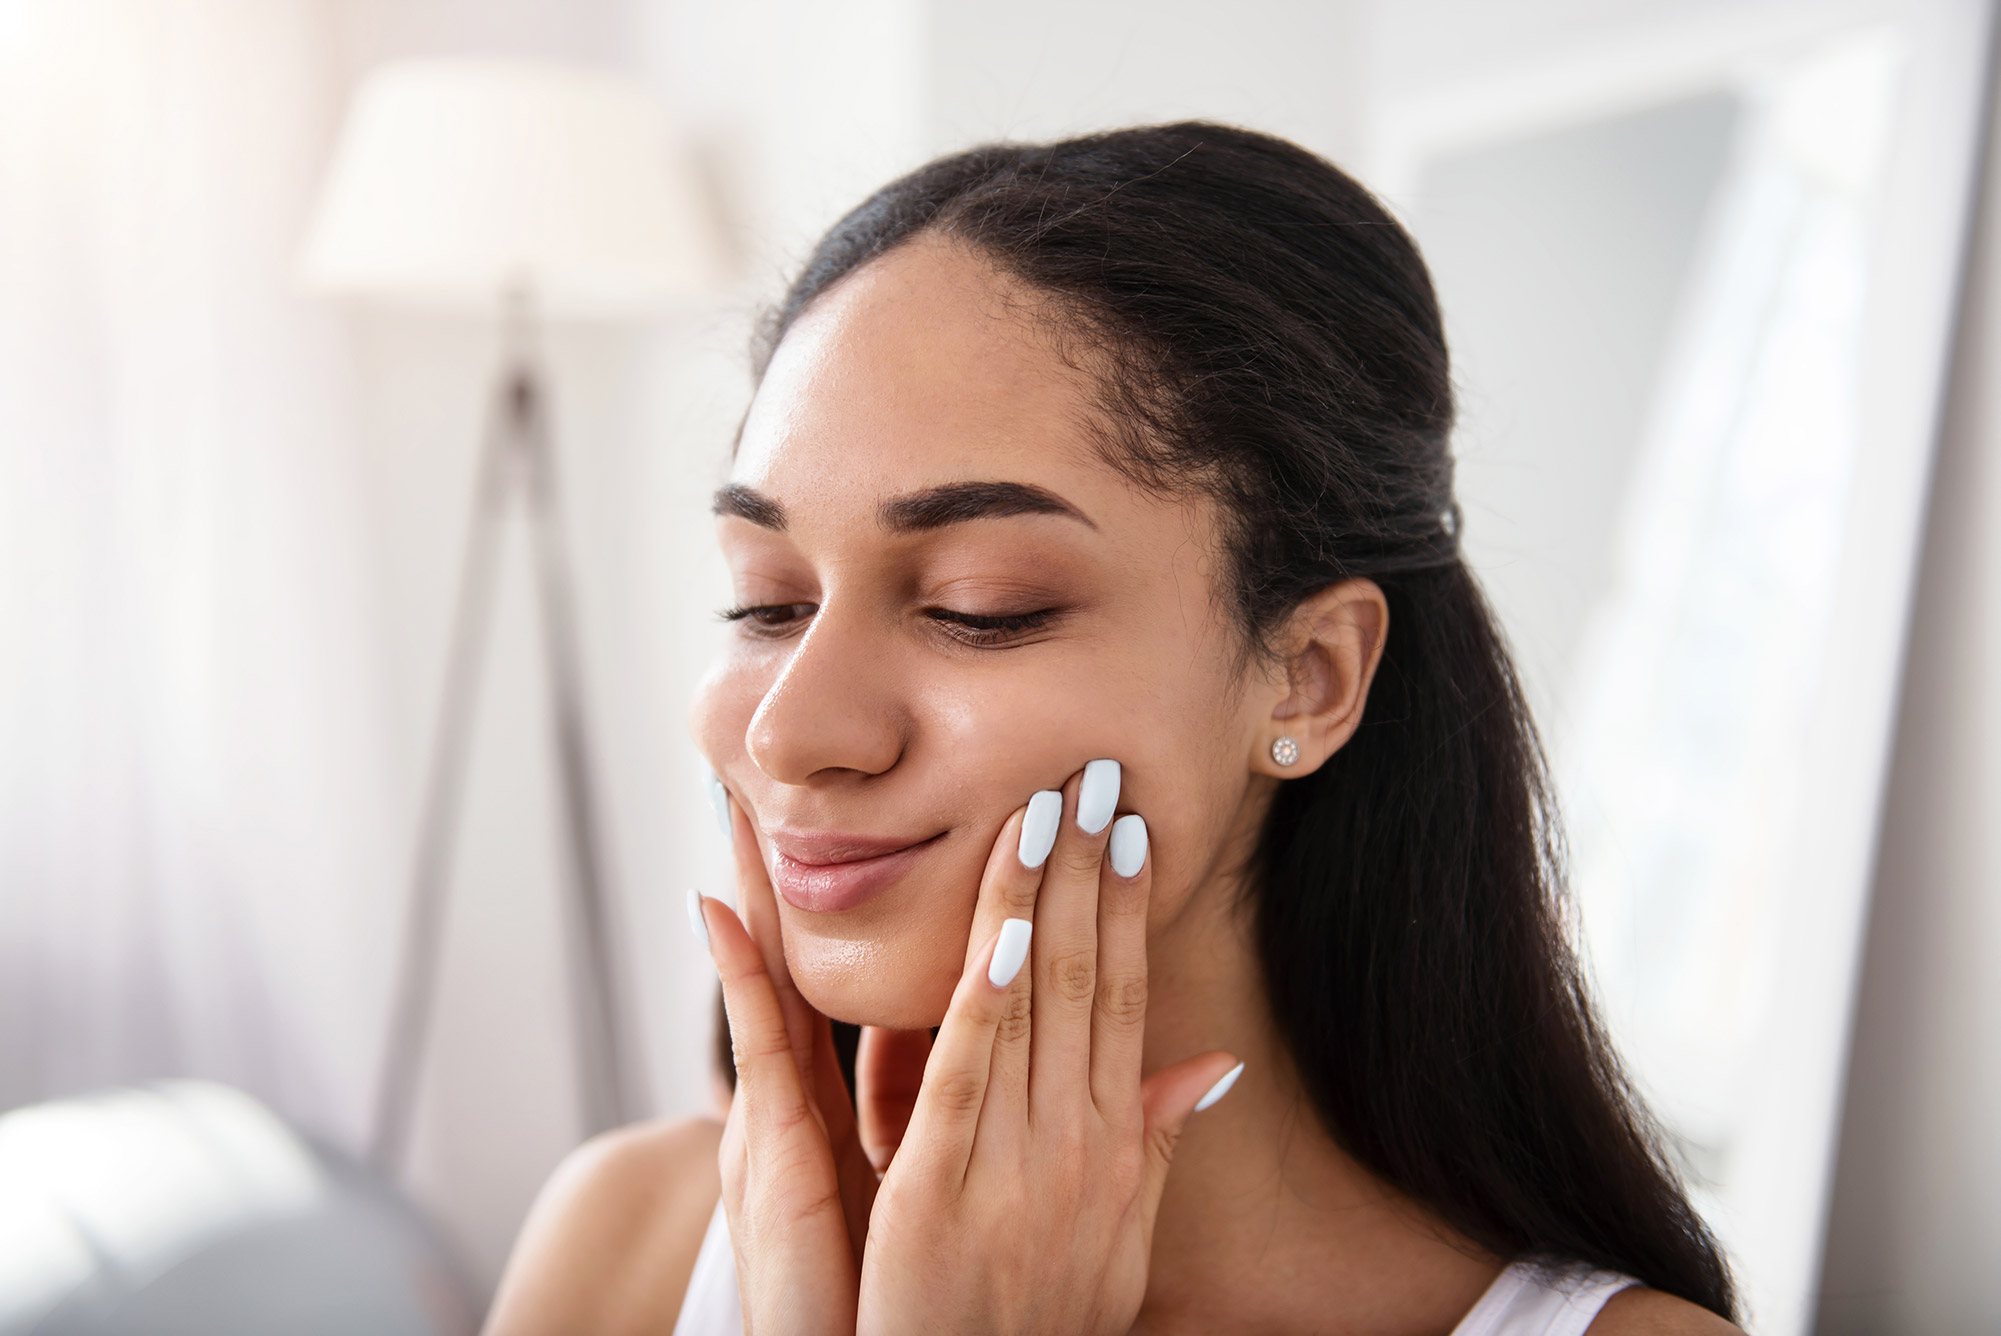 Vitamins that will keep your skin looking firm and youthful